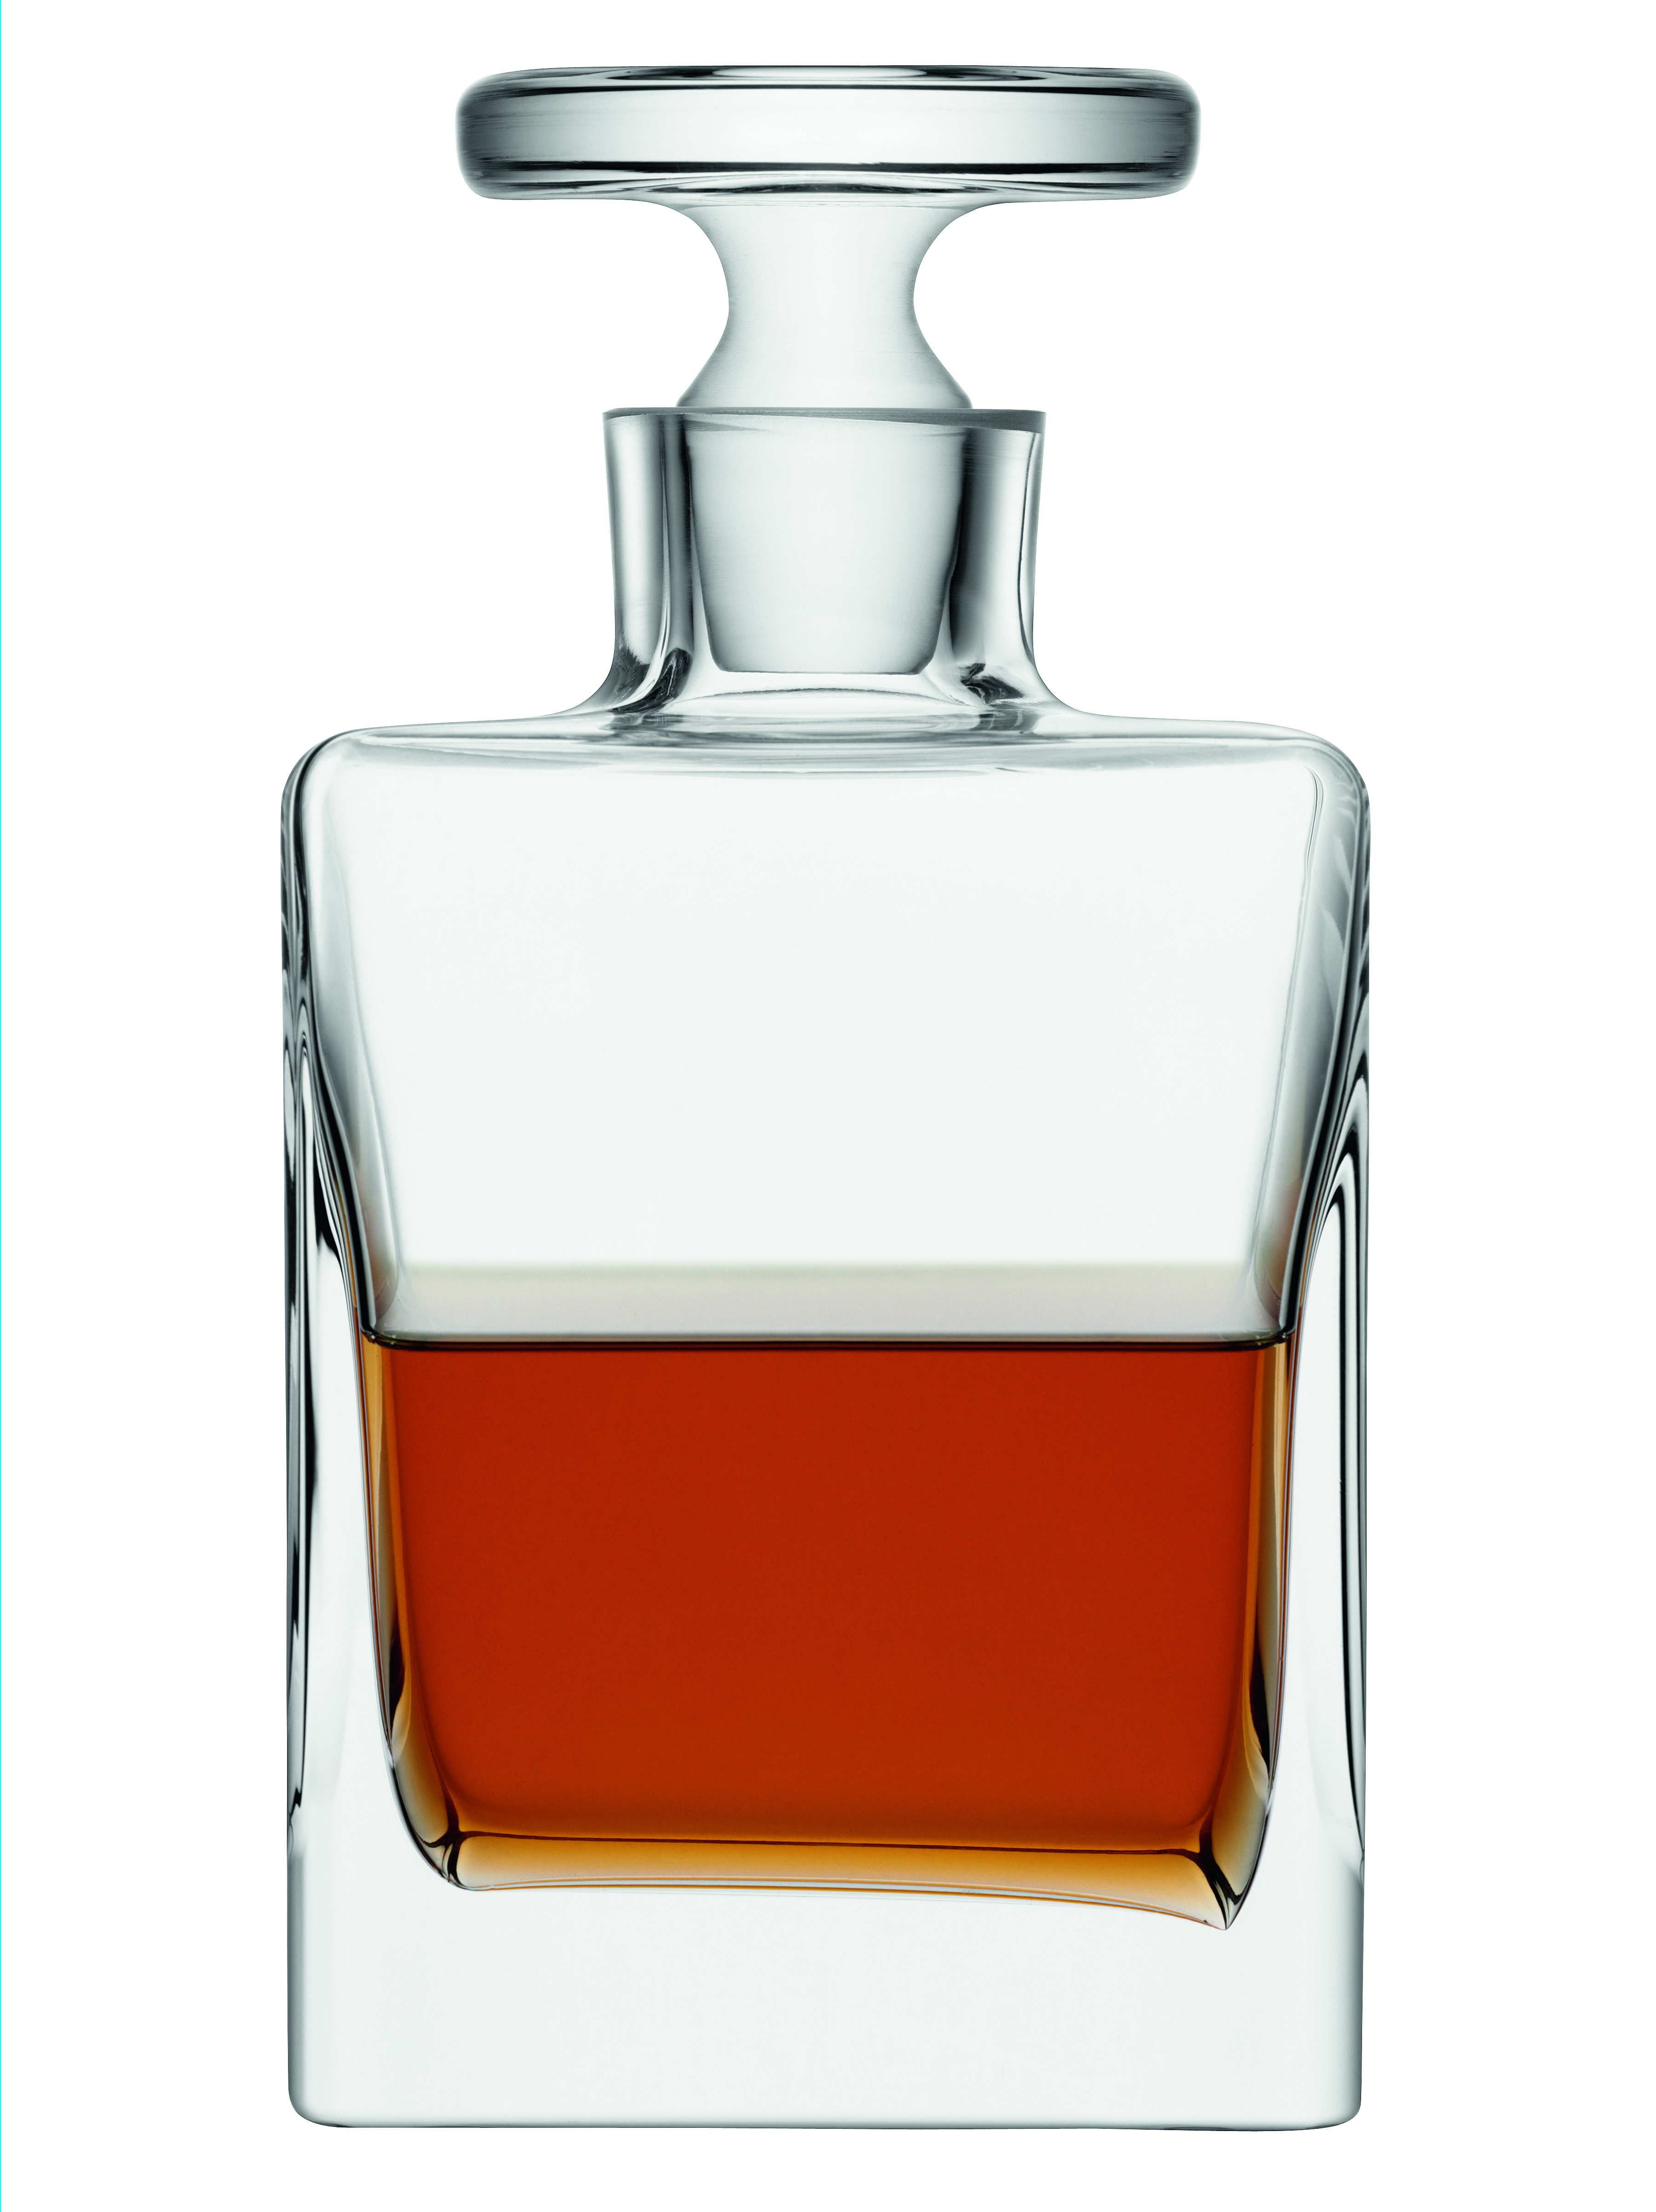 A Fine Example Of Mouthblown Glass The Simple Classic Lines Of This Quad Decanter Make A Bold Statement Presented In Styli Decanter Decanters Handmade Glass